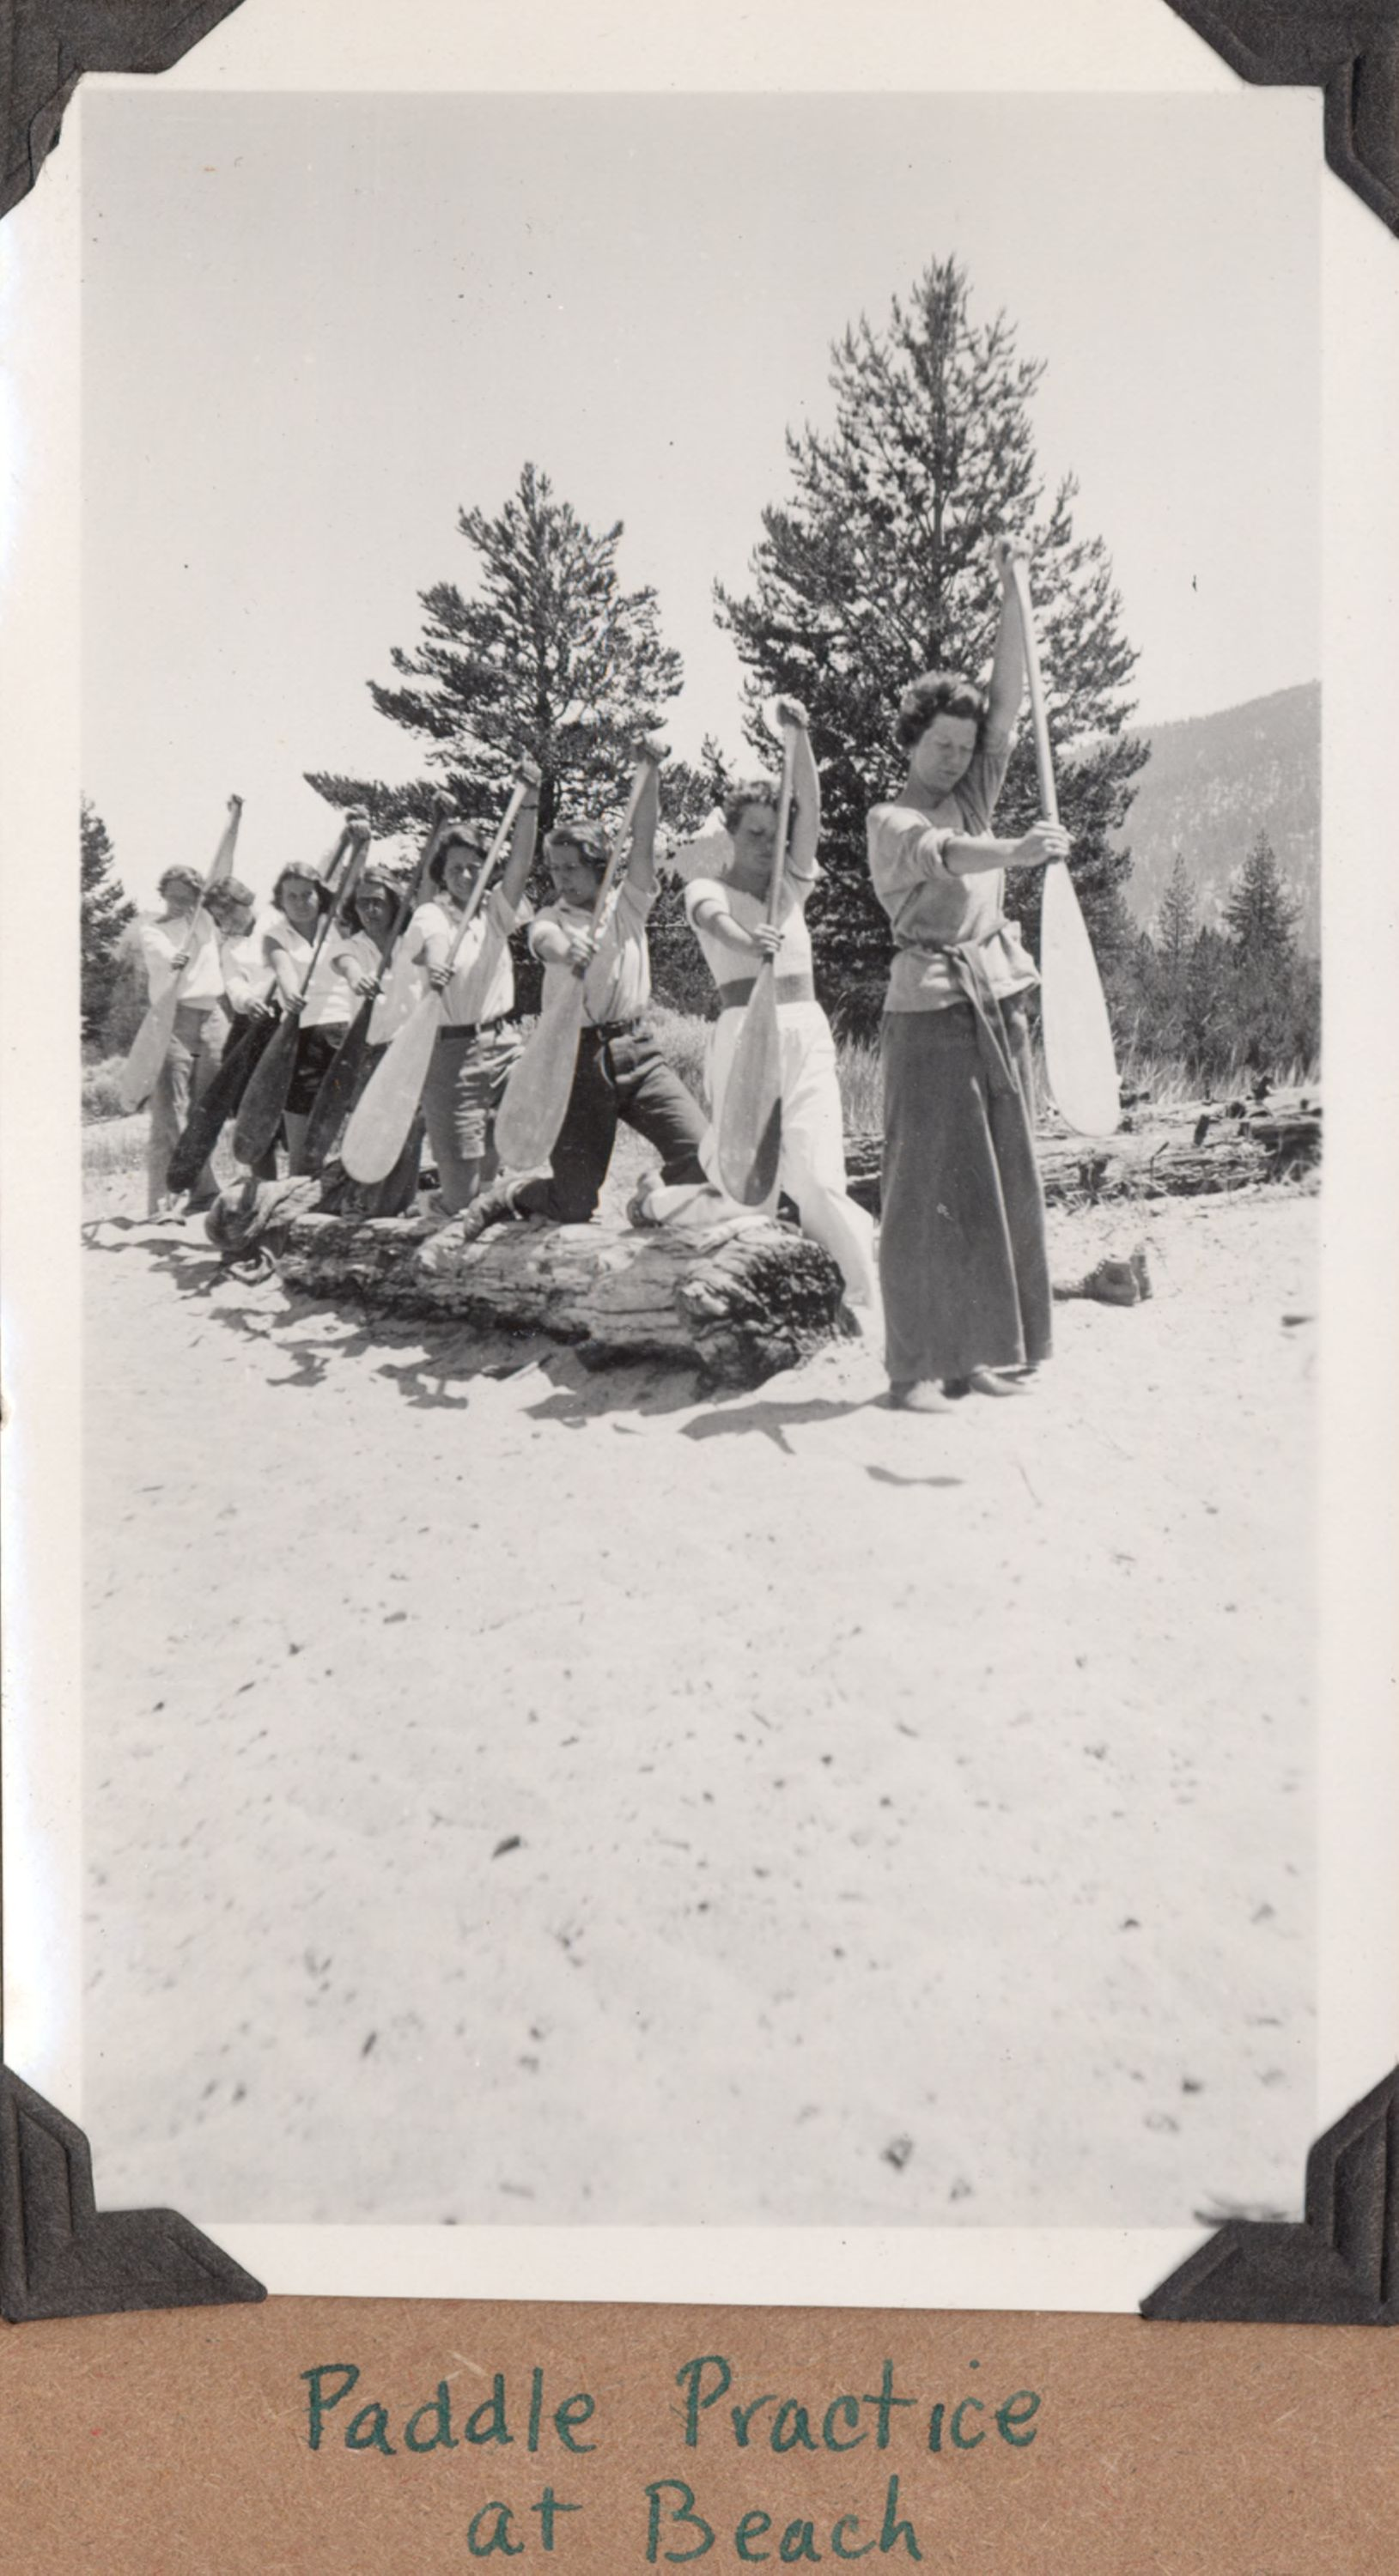 Camp Chonokis, Lake Tahoe, 1932, showing how outdoor training creates teamwork and builds moral character.   Image/ Special Collections Department, University of Nevada, Reno, Libraries